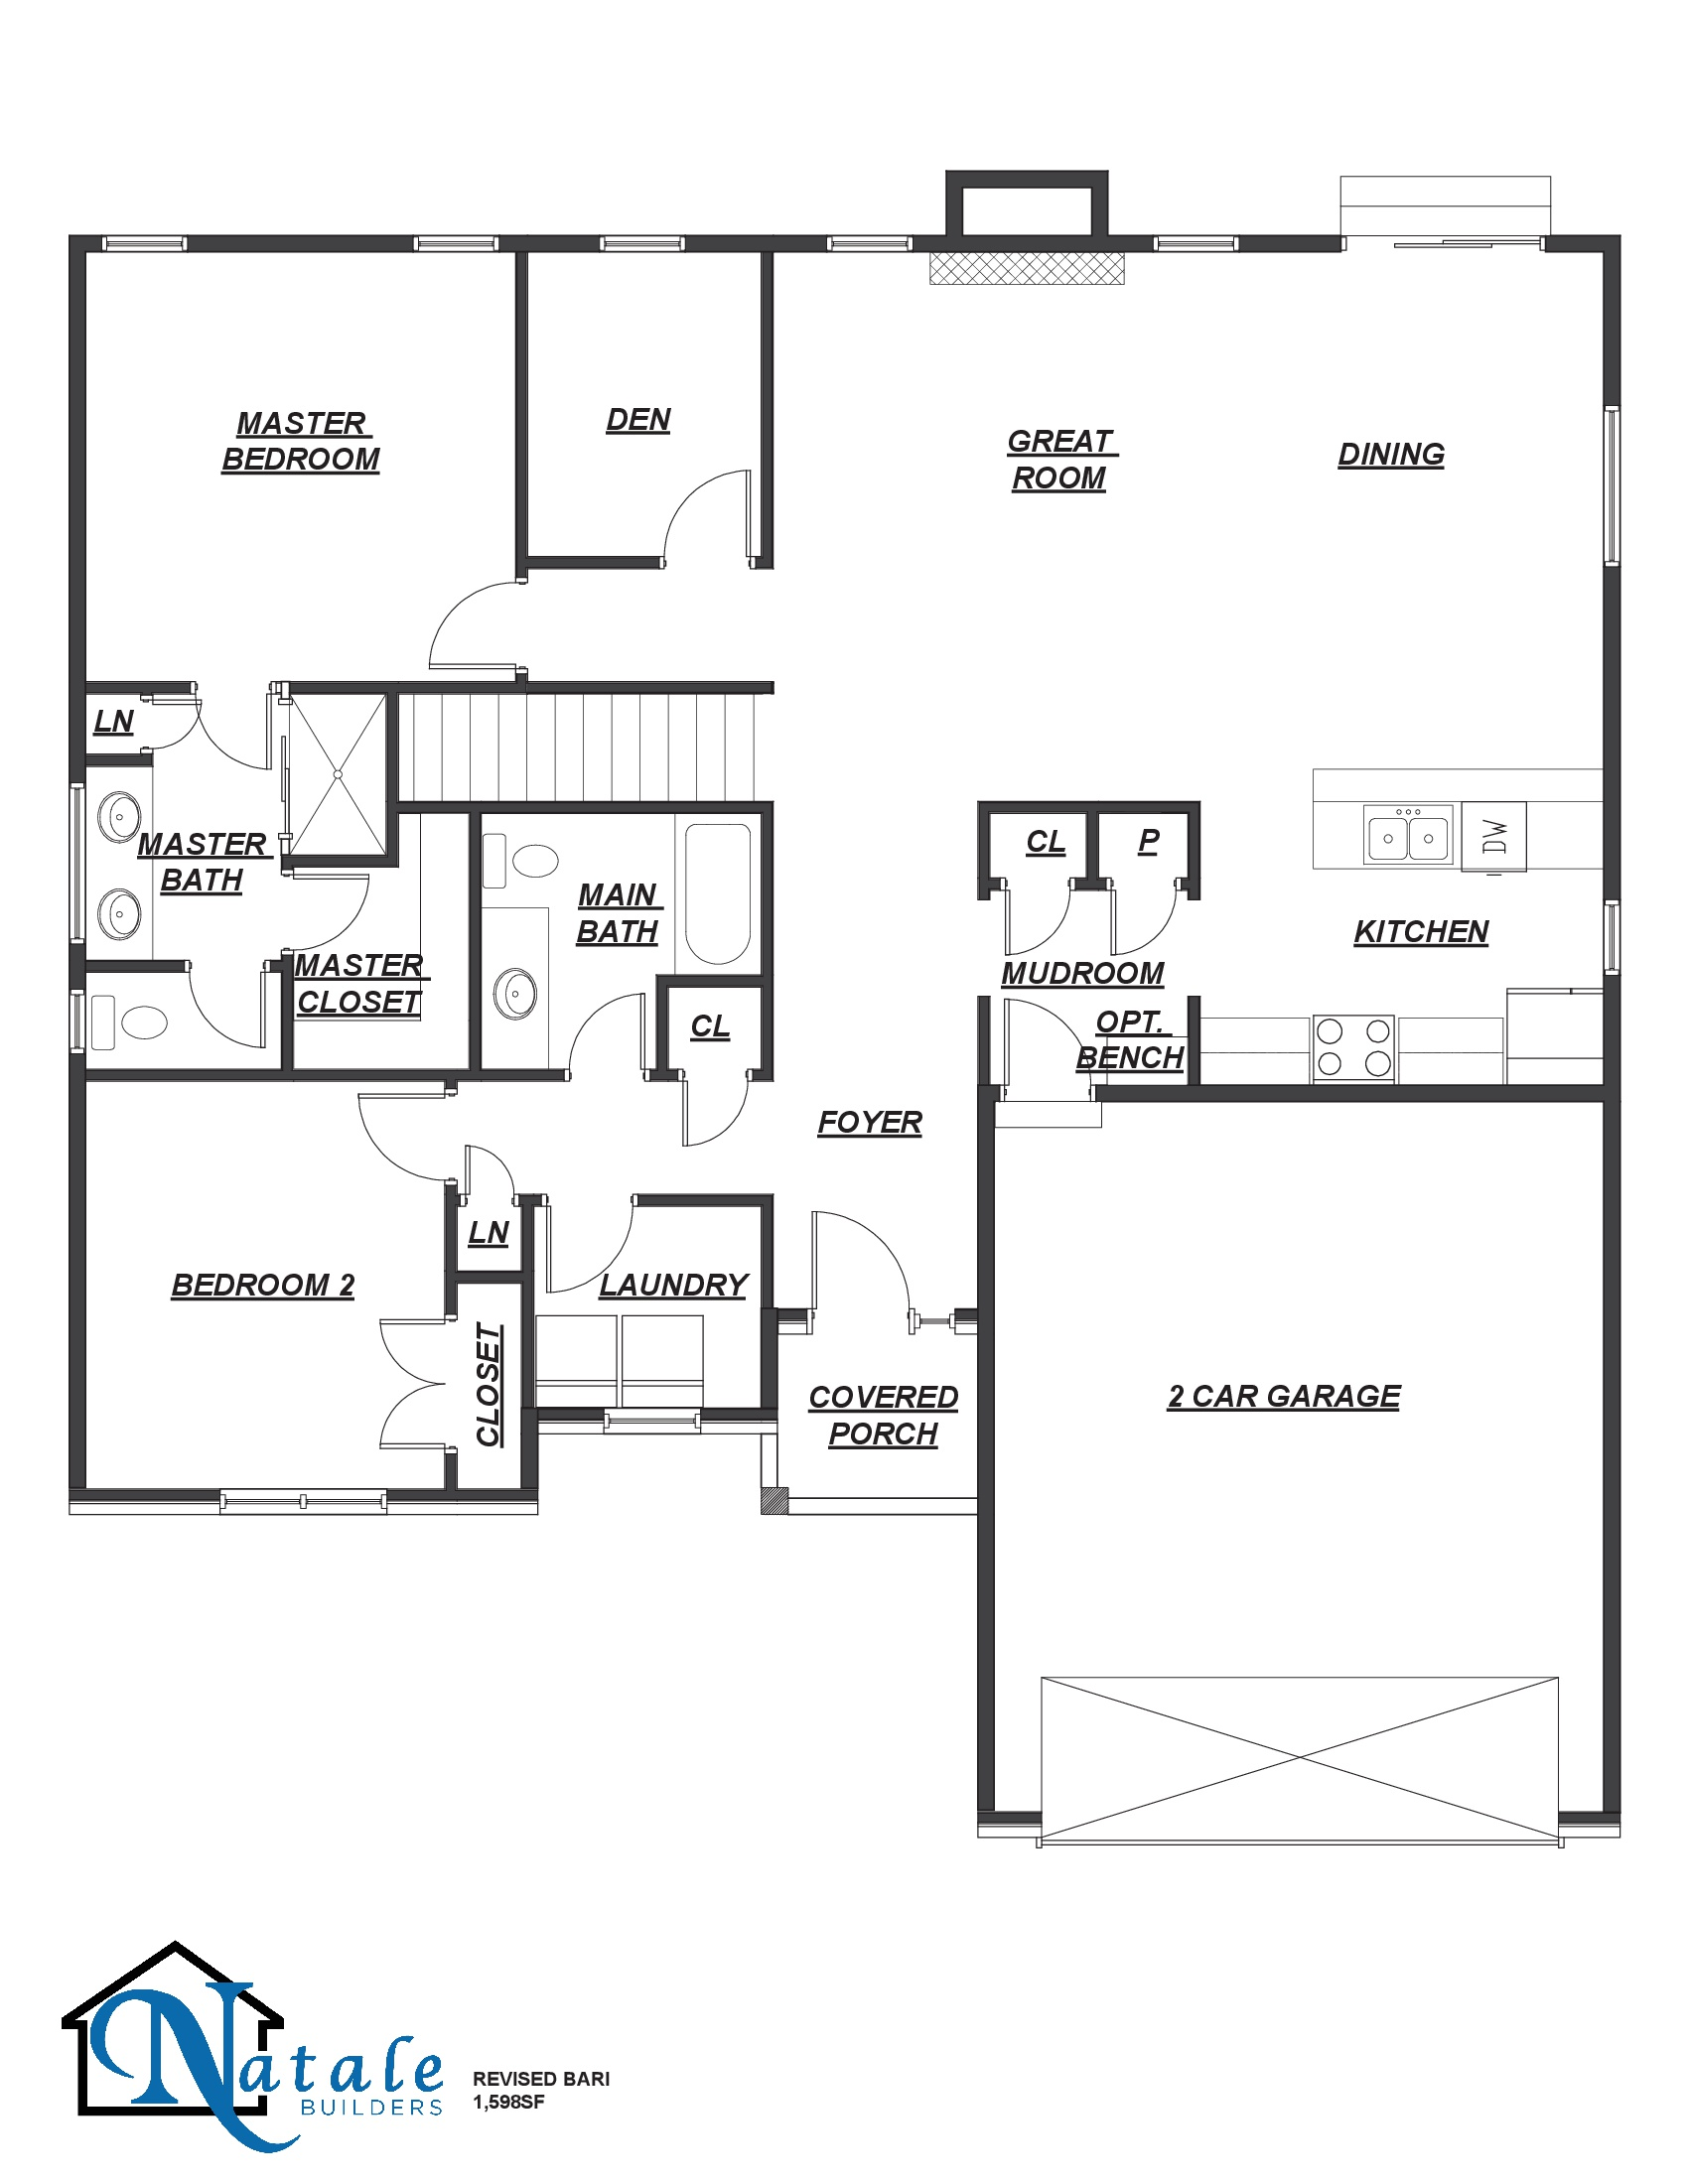 Ranch Homes | Natale Builders on large house plans with deck, large house plans with courtyard, large house plans with pantry, large house plans with furniture, large house plans with living area, large house plans with screen porch, large house plans with open floor plan, large house plans with study,